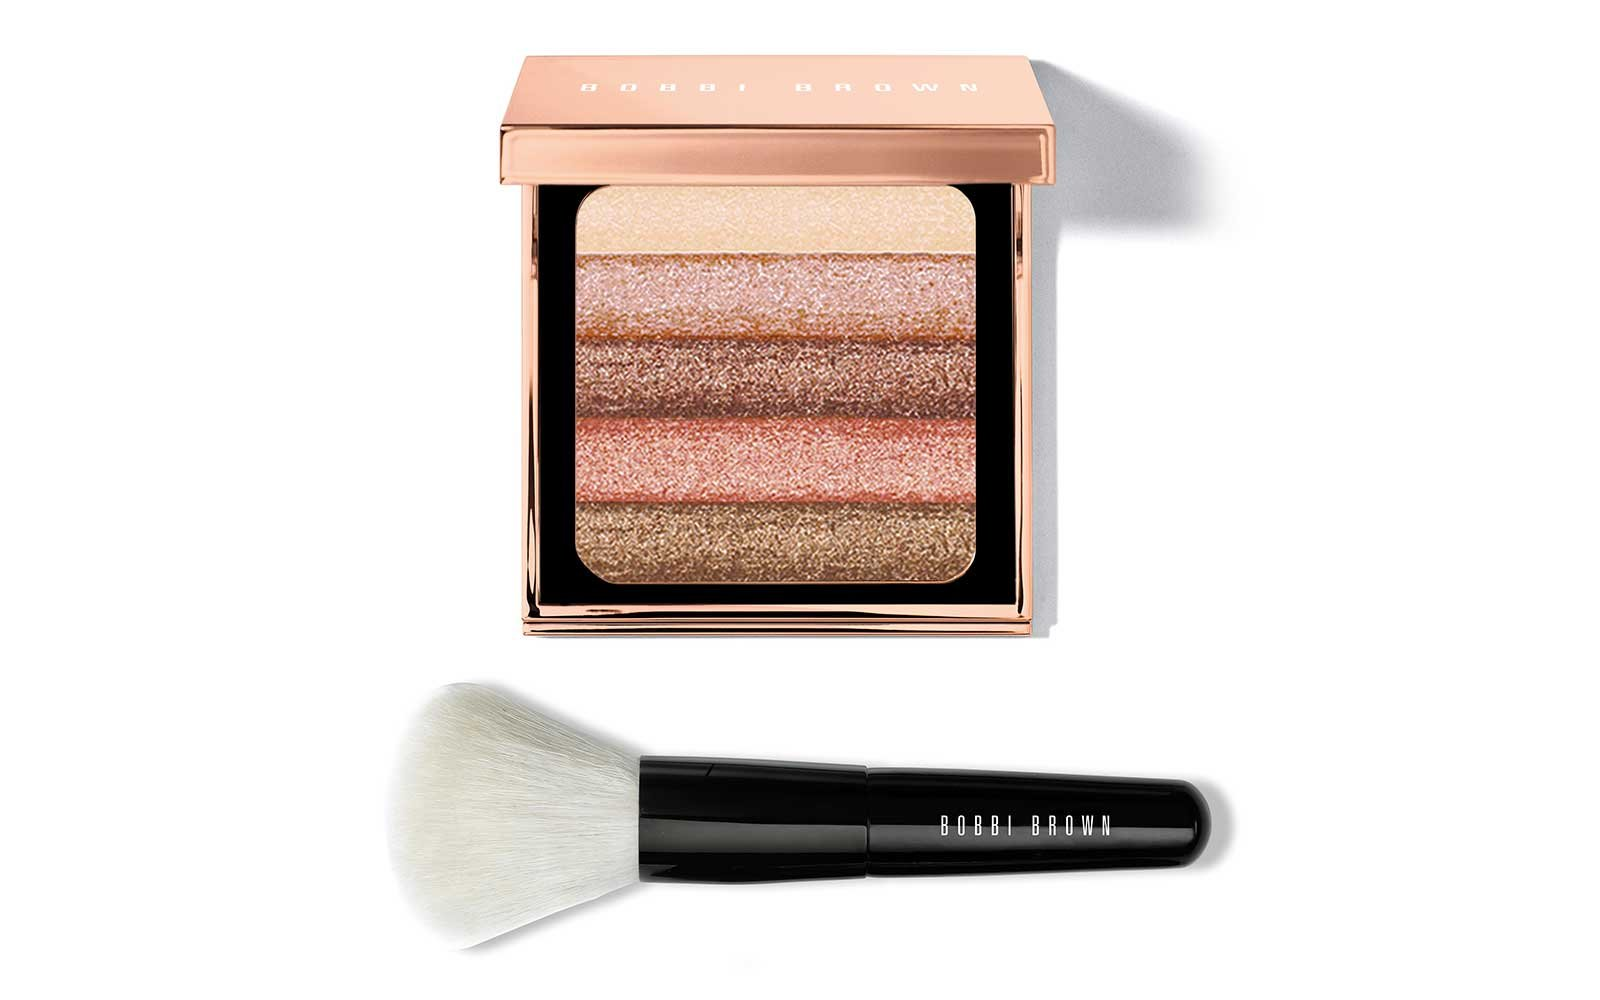 Bobbi Brown shimmer powder and brush